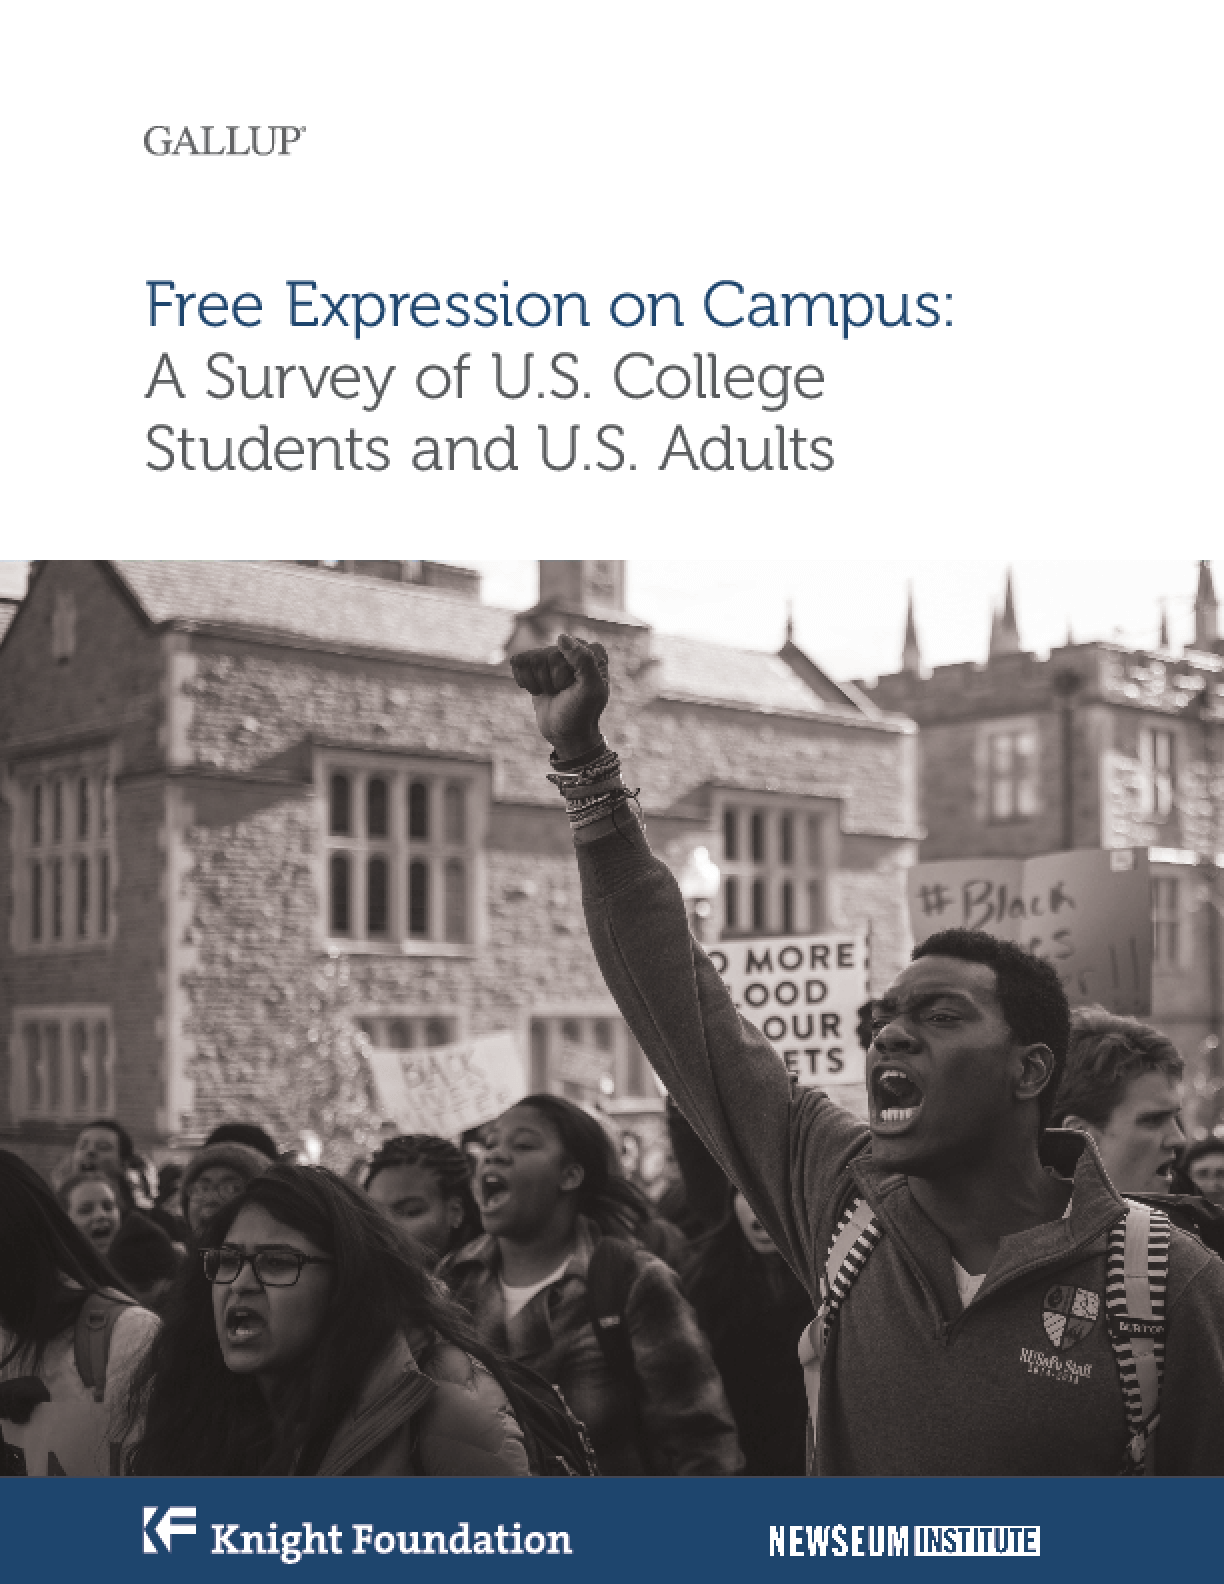 Free Expression on Campus: A Survey of U.S. College Students and U.S. Adults